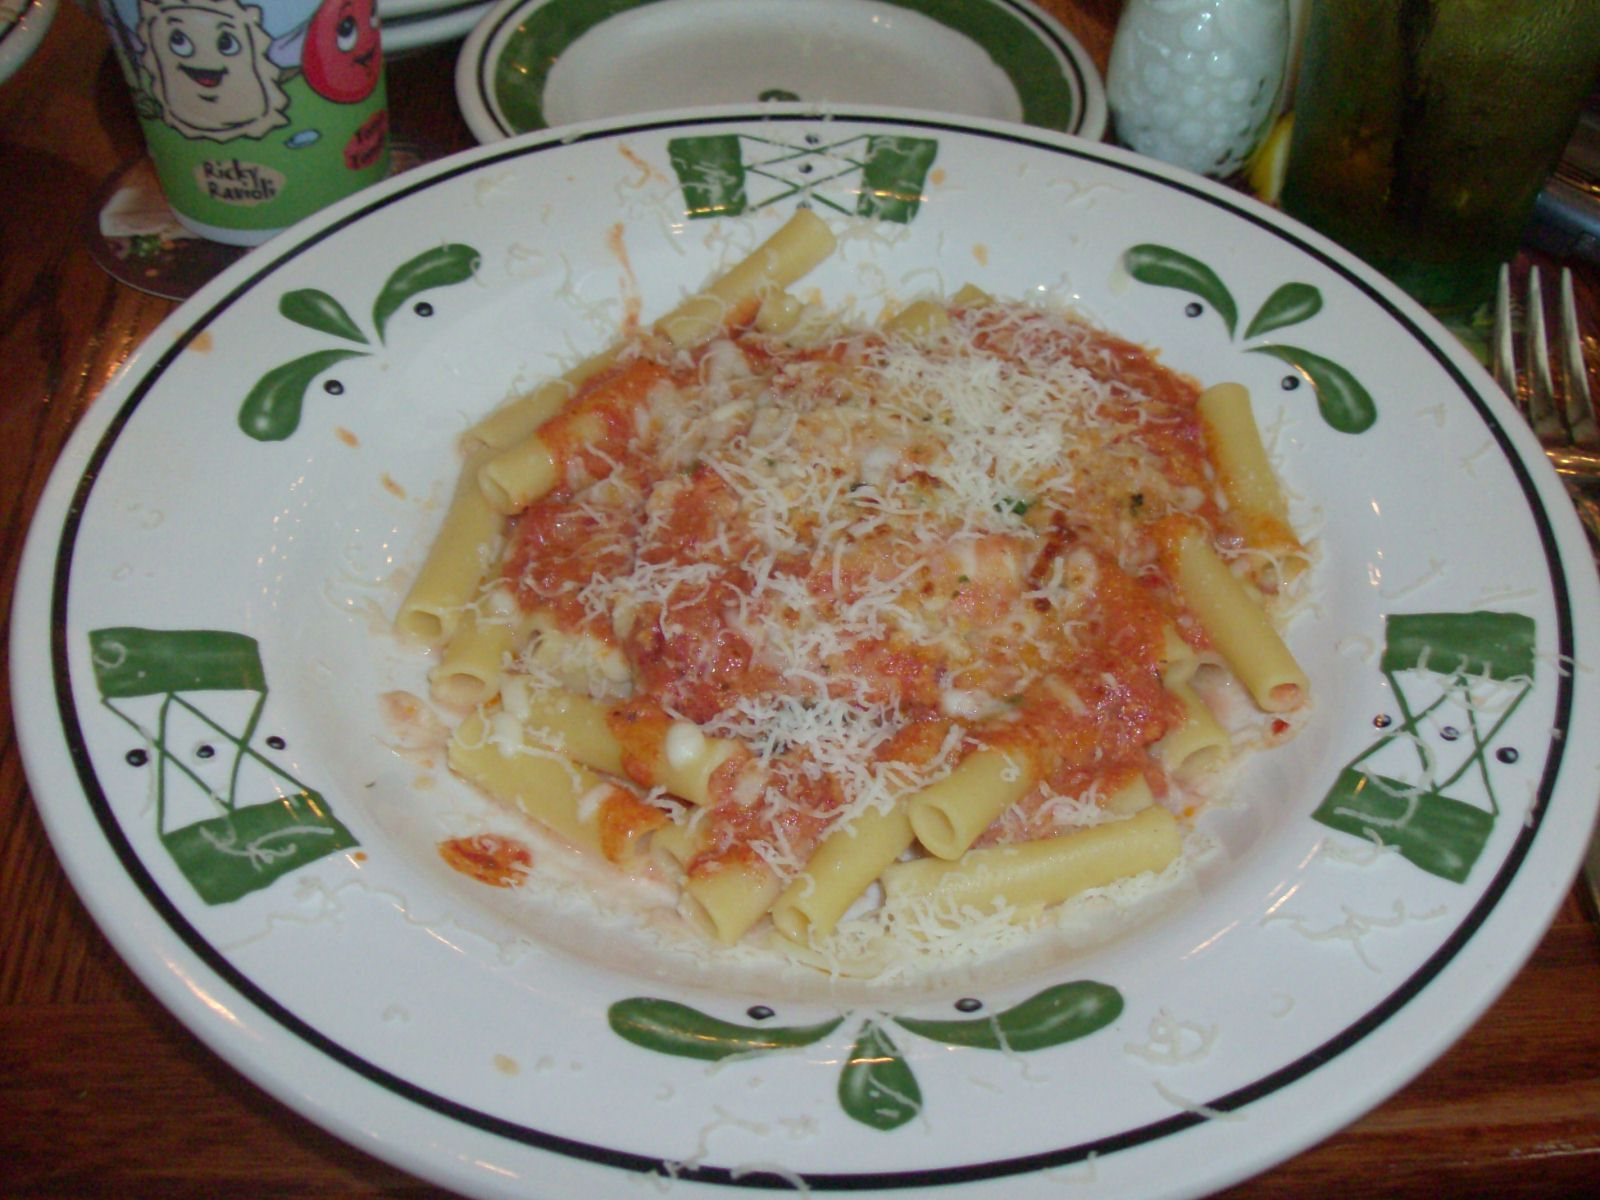 Olive Garden 39 S Five Cheese Ziti Al Forno Recipe 5 Stars I Thought It Was Better Than Olive